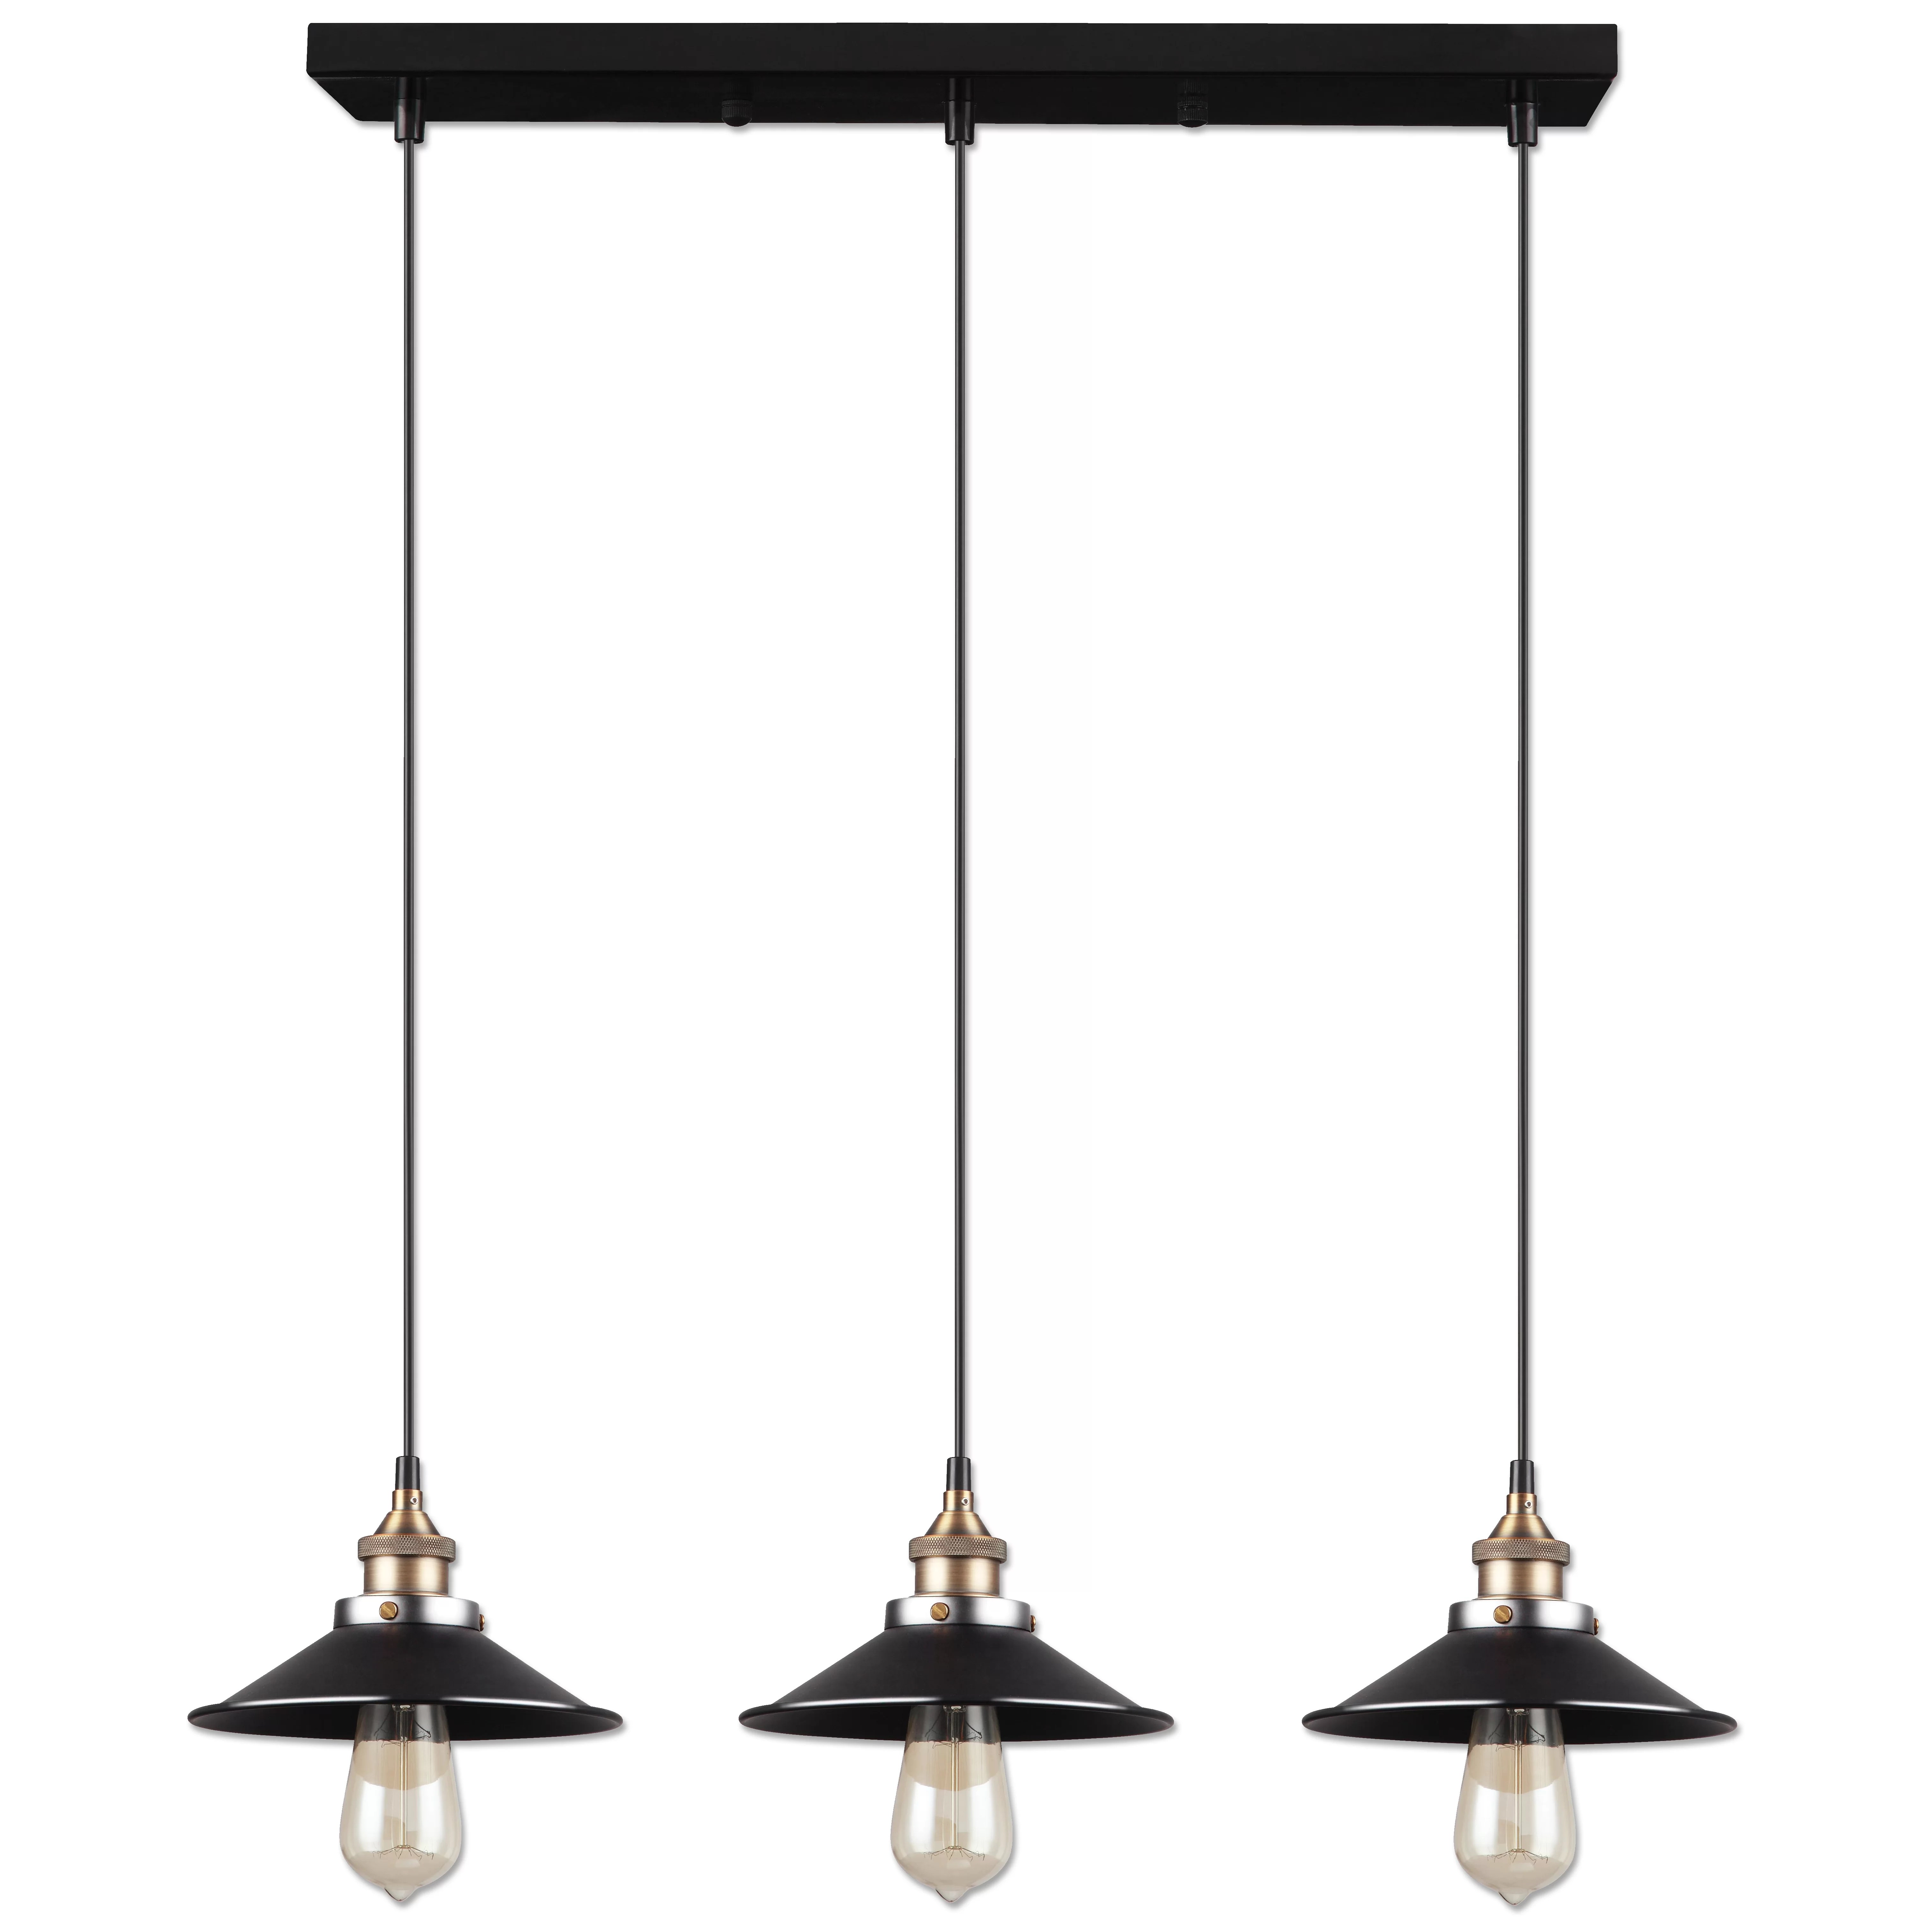 Pendant Island Lights Beldi Ezra 1 Light Kitchen Island Pendant And Reviews